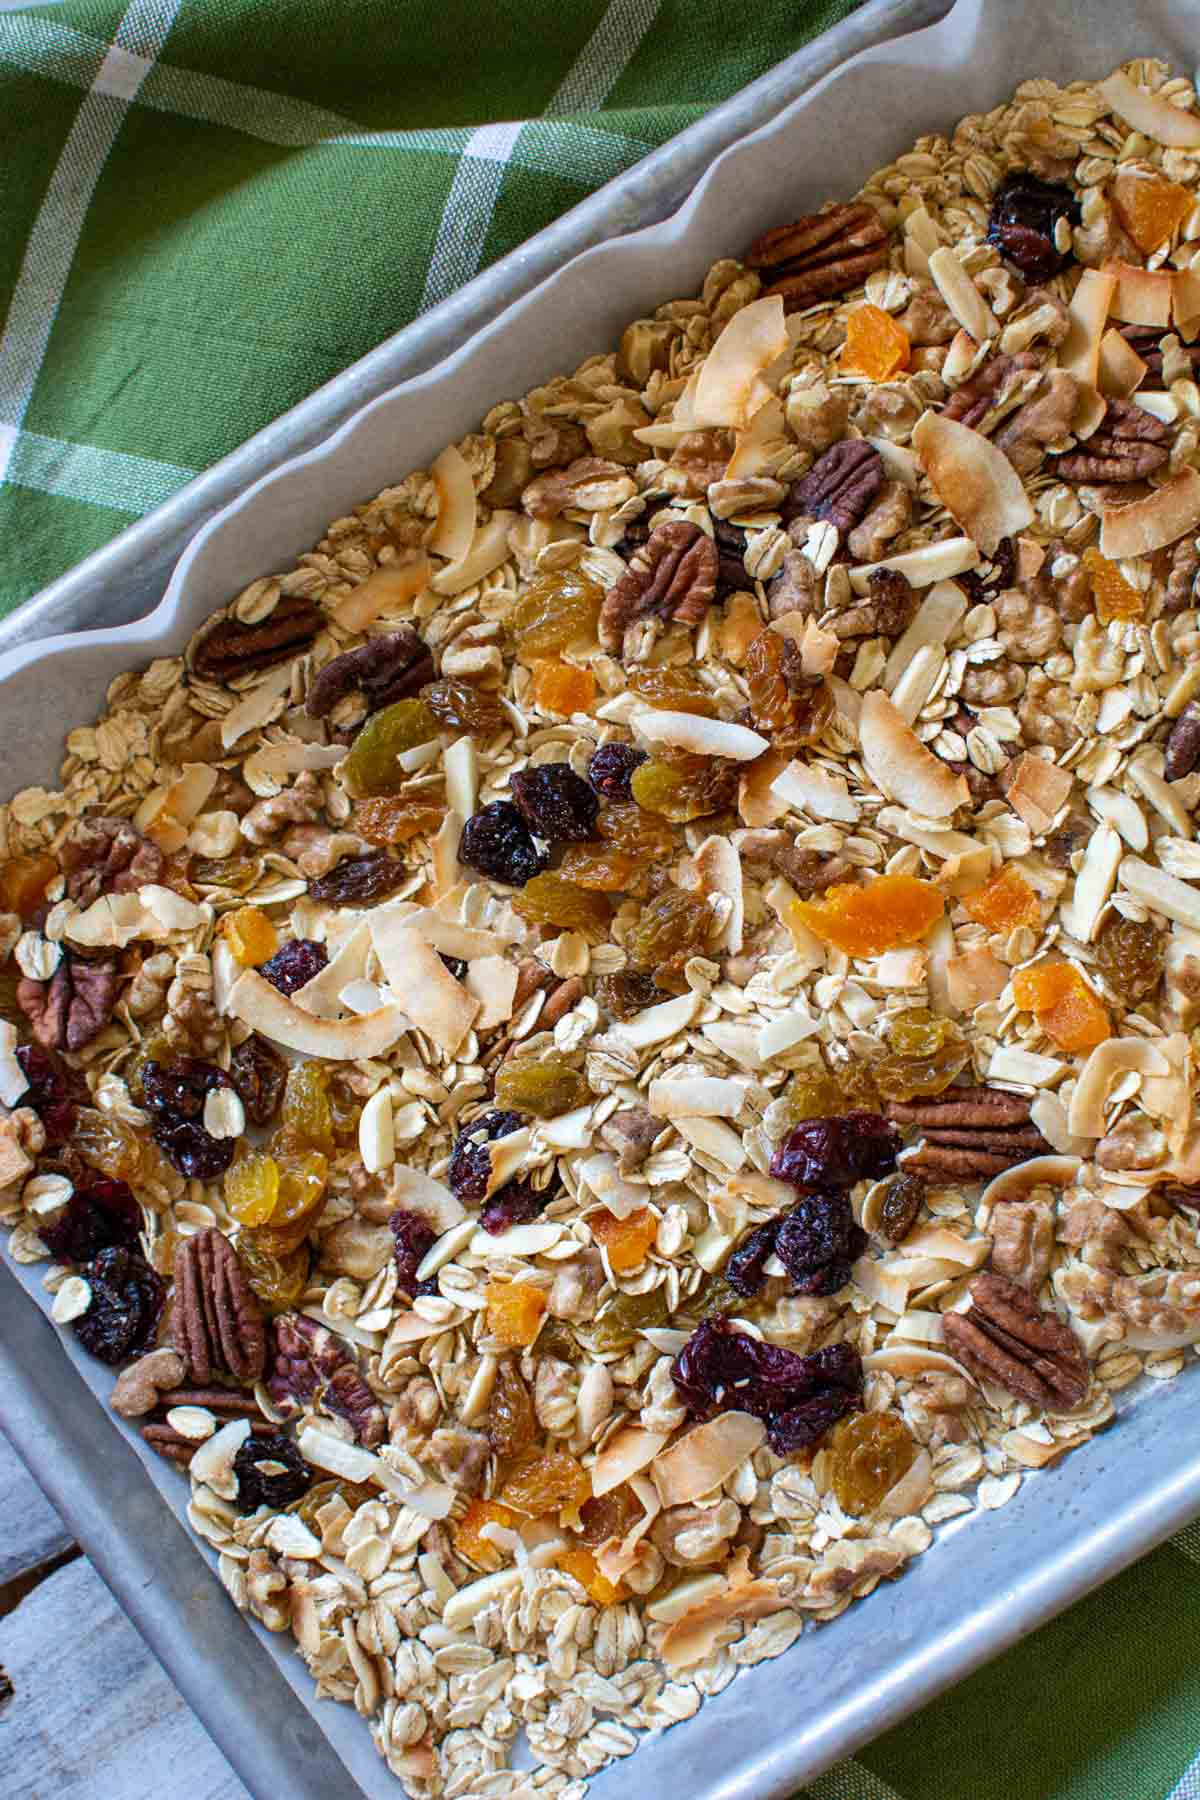 nuts, coconut, oats, and dried fruits on a sheet pan.